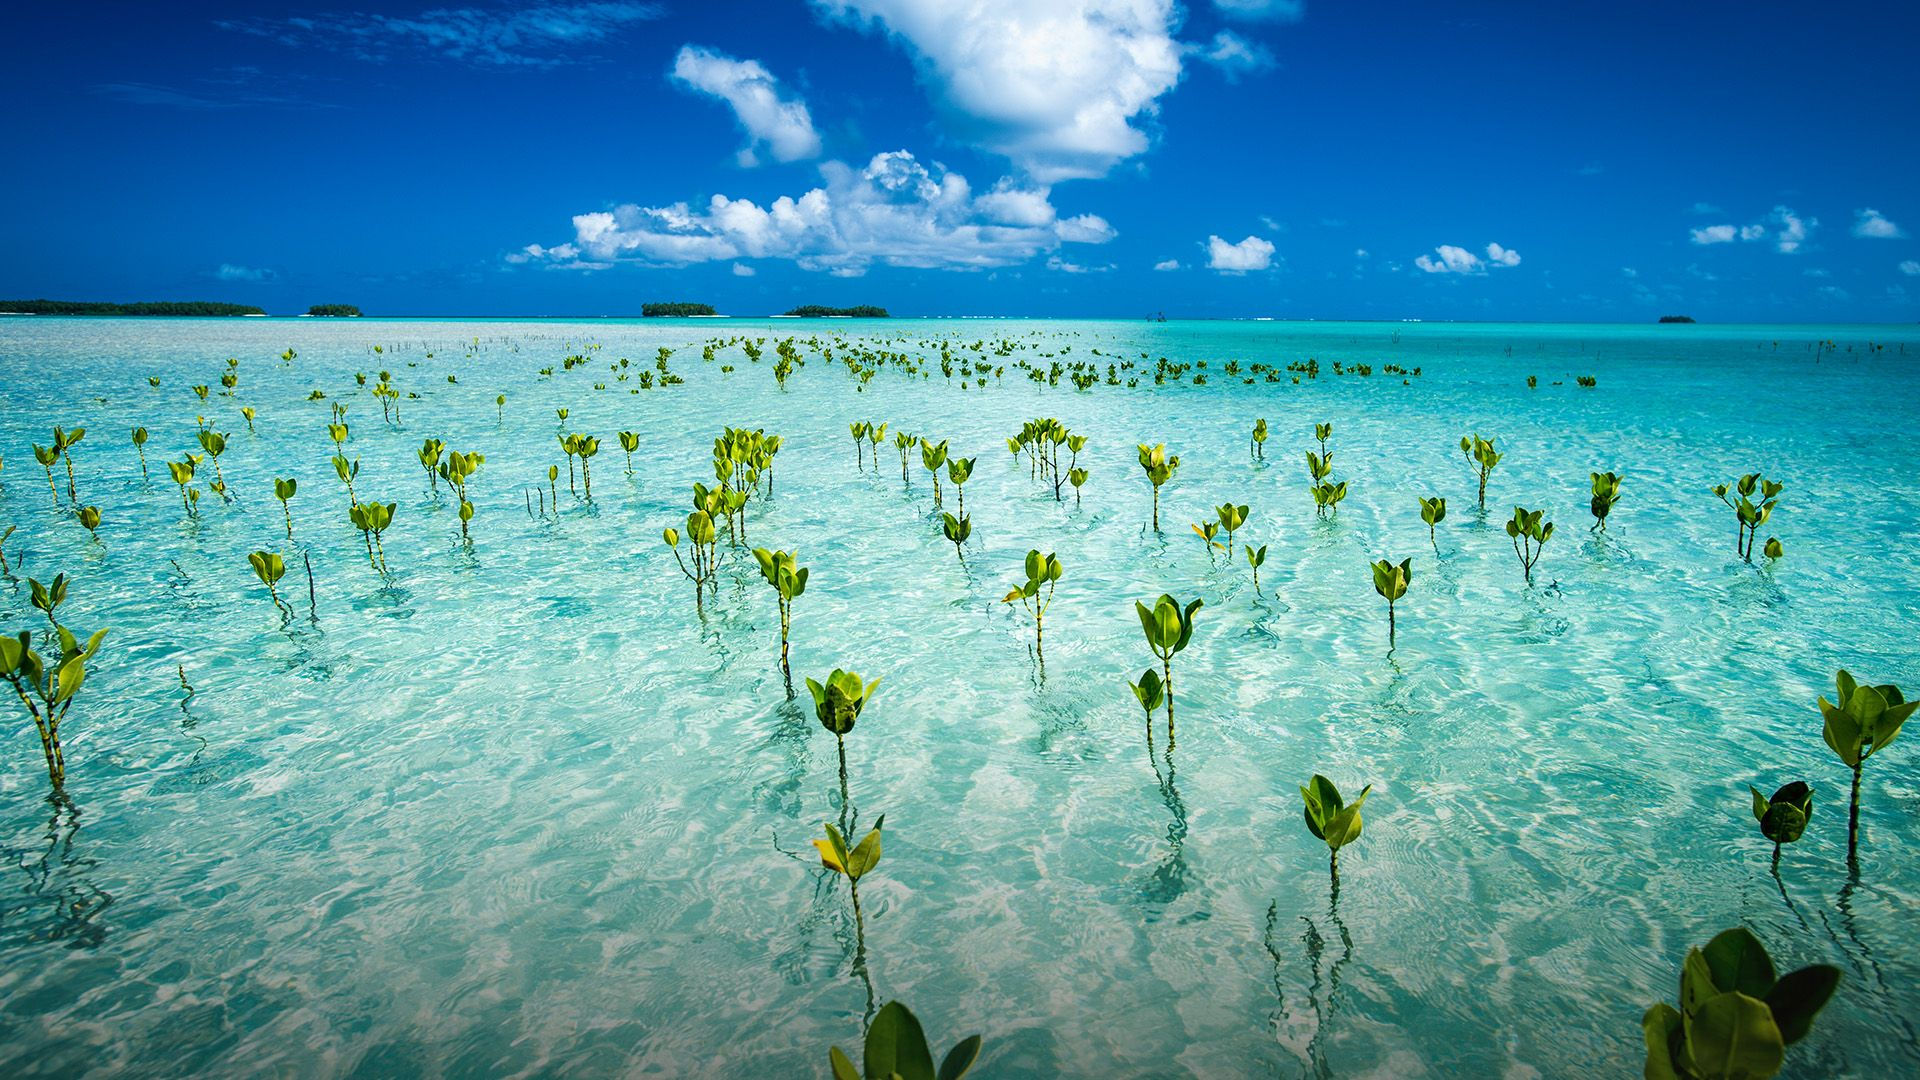 Young mangroves form part of the marine park, near Tuvalu mainland |  Windows 10 SpotLight Images | Mangrove, Tuvalu, Island nations